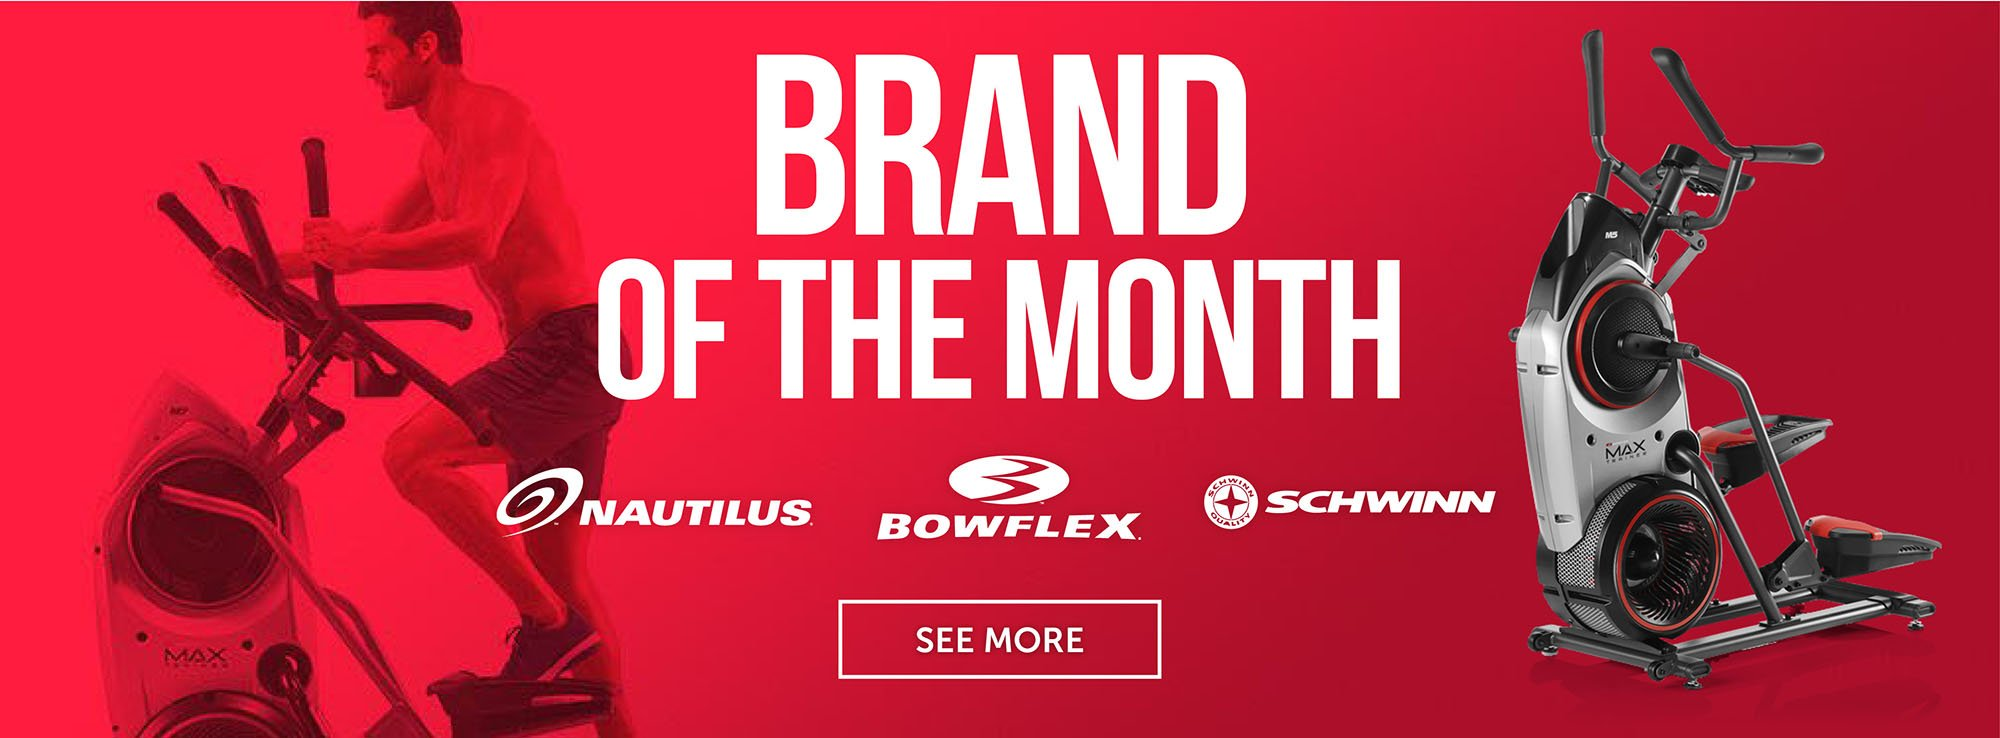 Brand of the Month - Nautilus